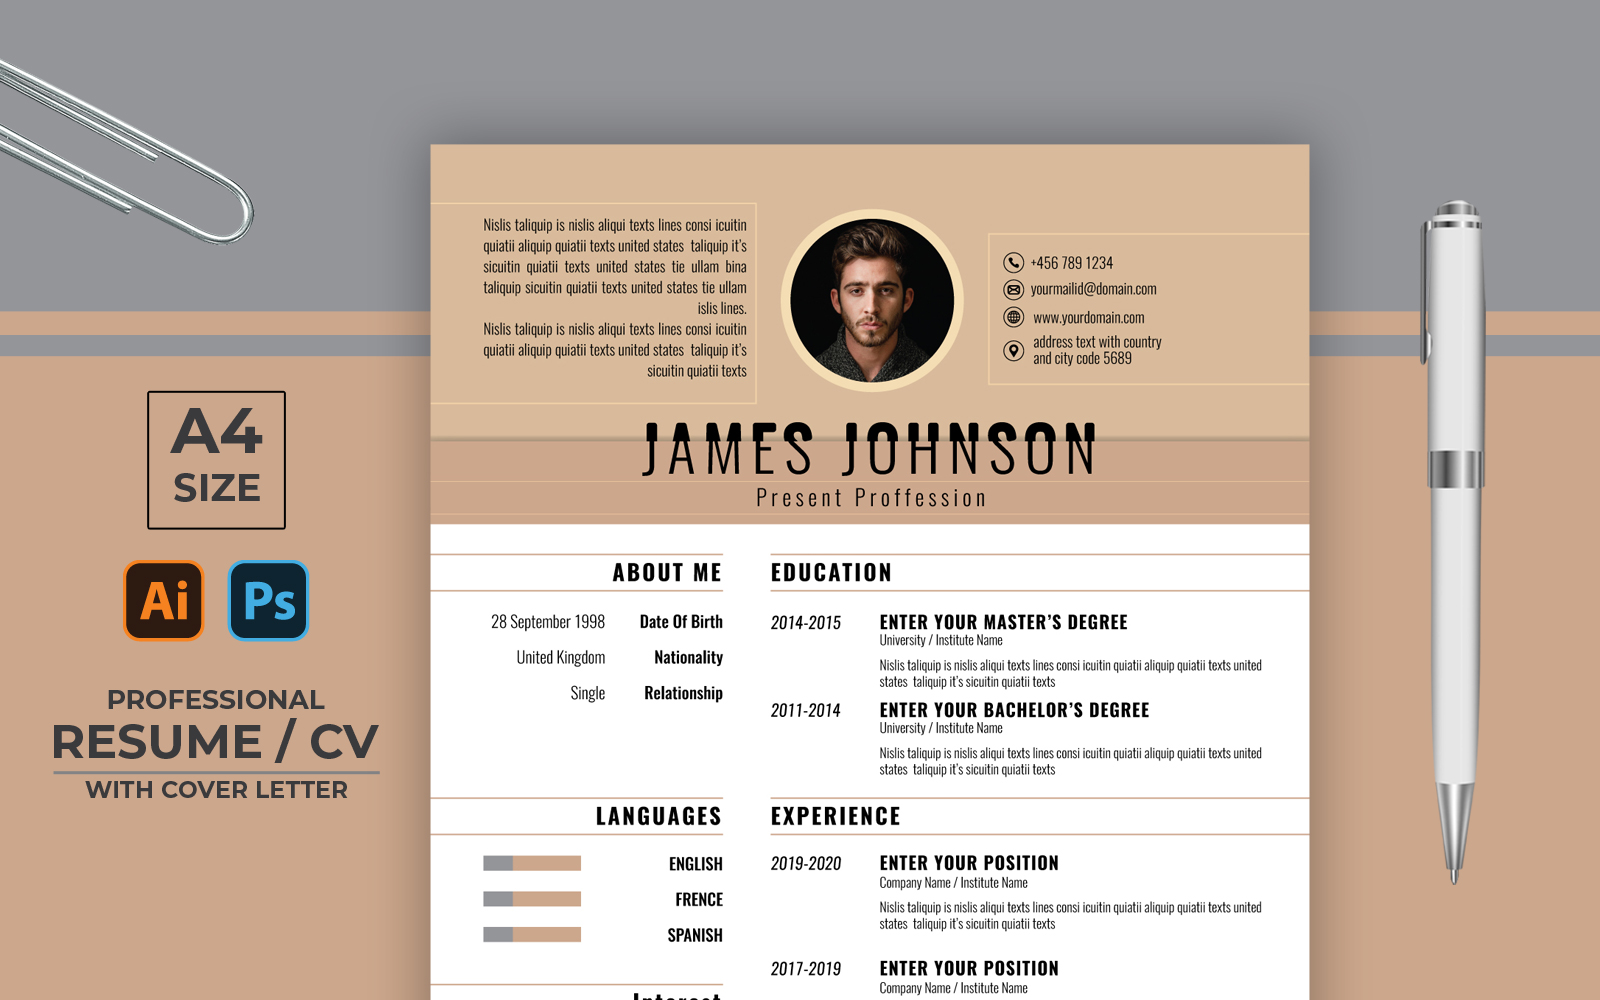 Board Color Professional CV Resume #123161